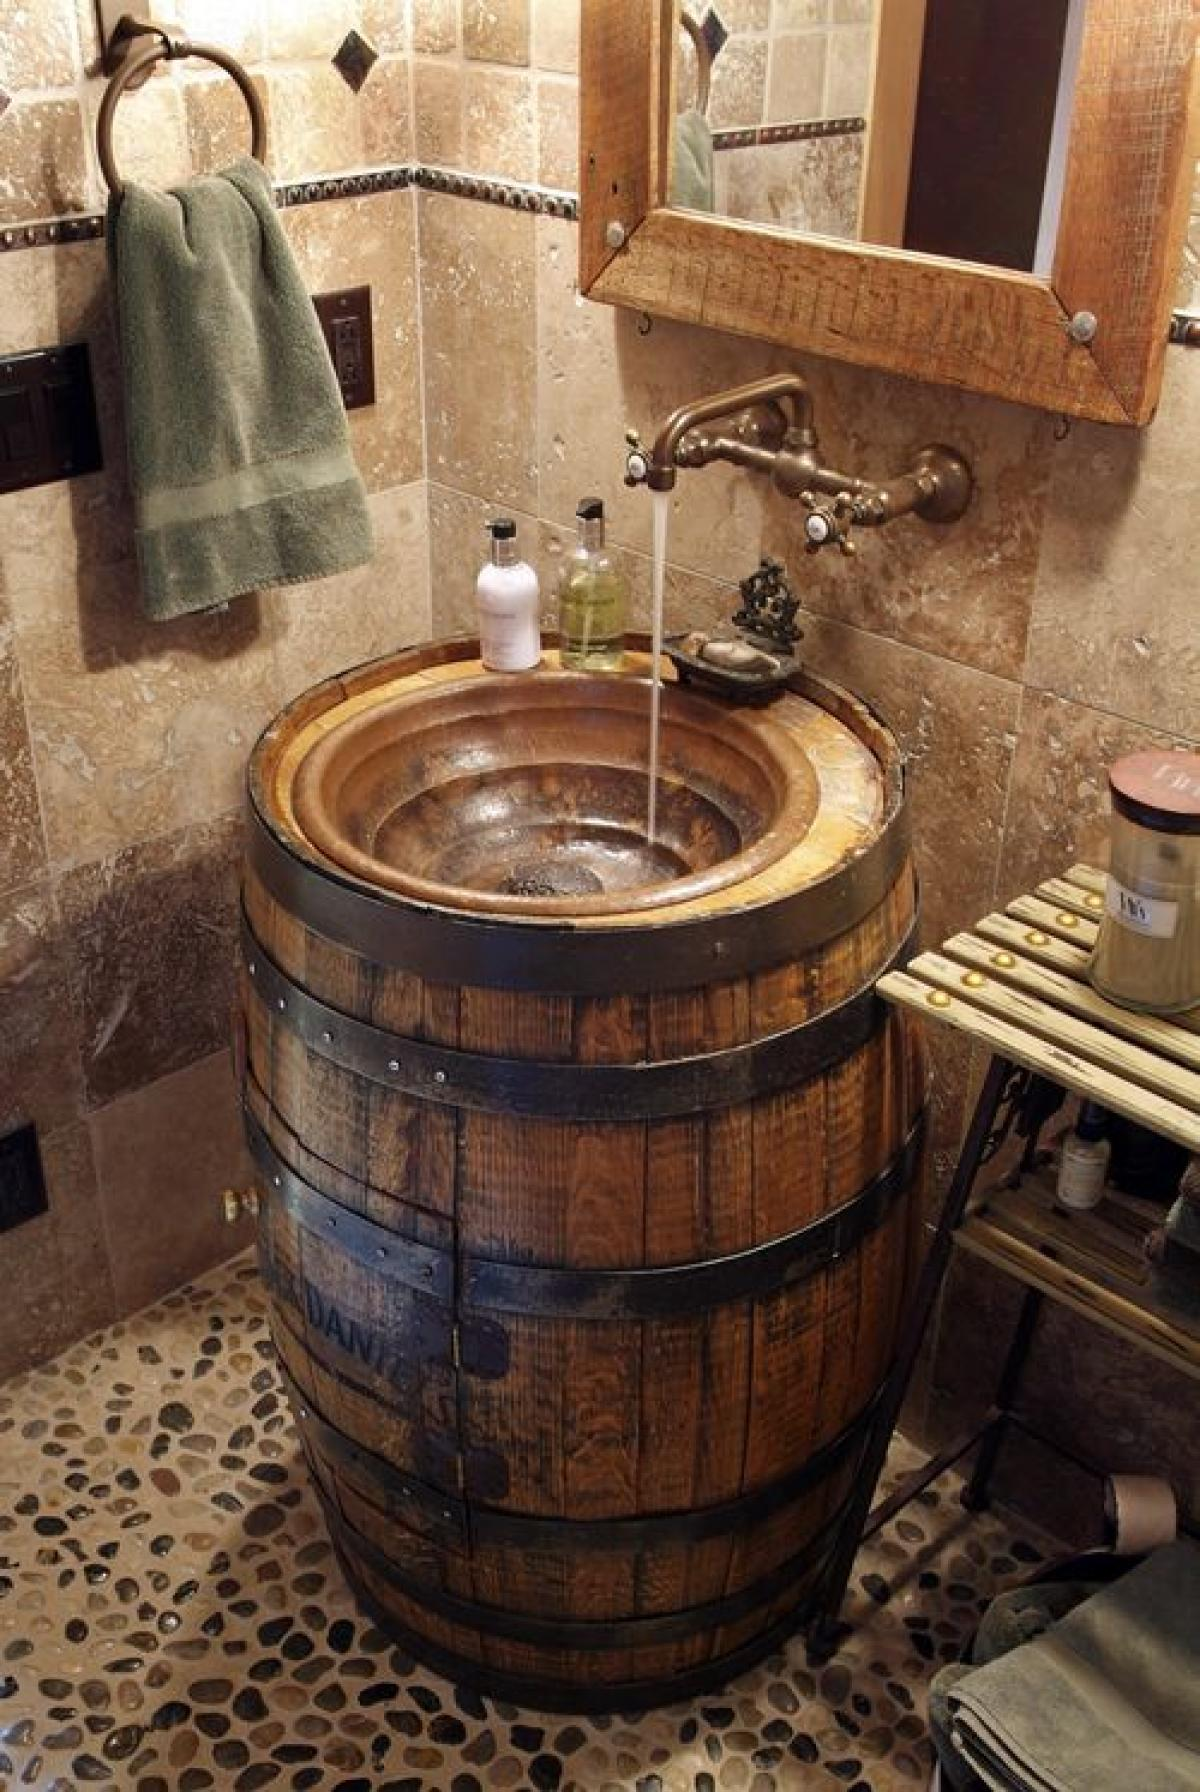 Exceptional 17 Inspiring Rustic Bathroom Decor Ideas For Cozy Home